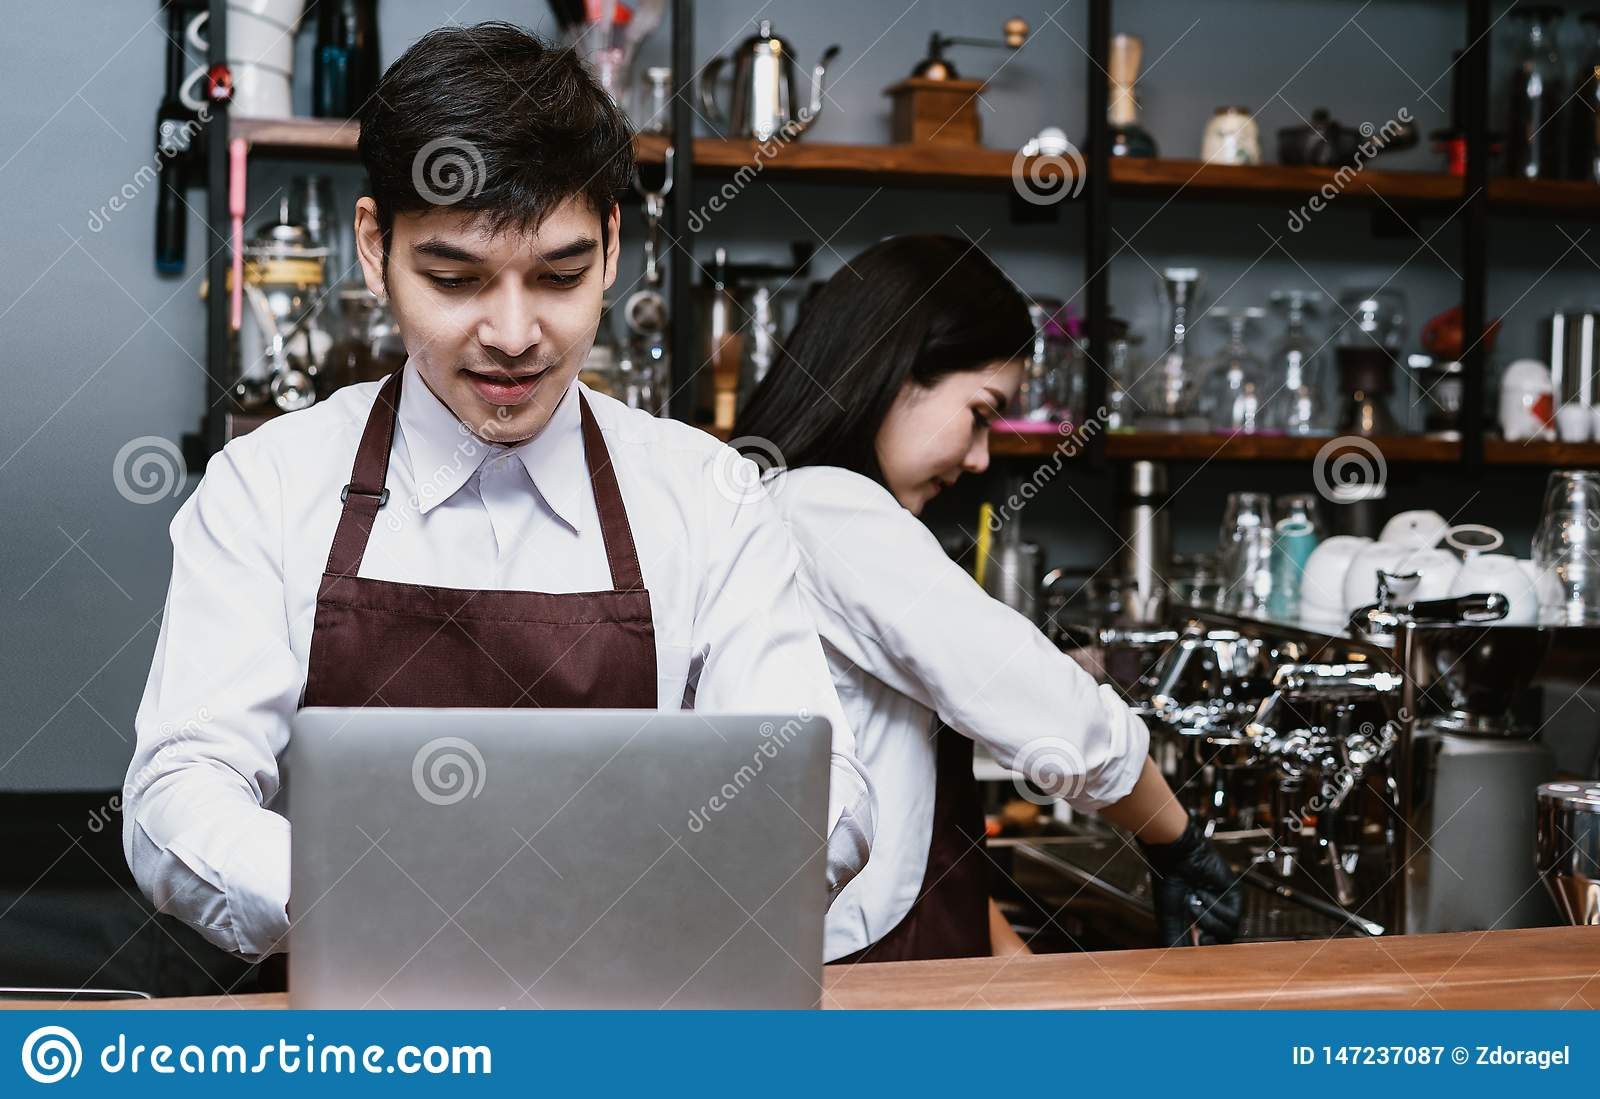 Portrait of Asian couple small business owner using laptop at counter bar in cafe, Service mind and Startup Owner small business